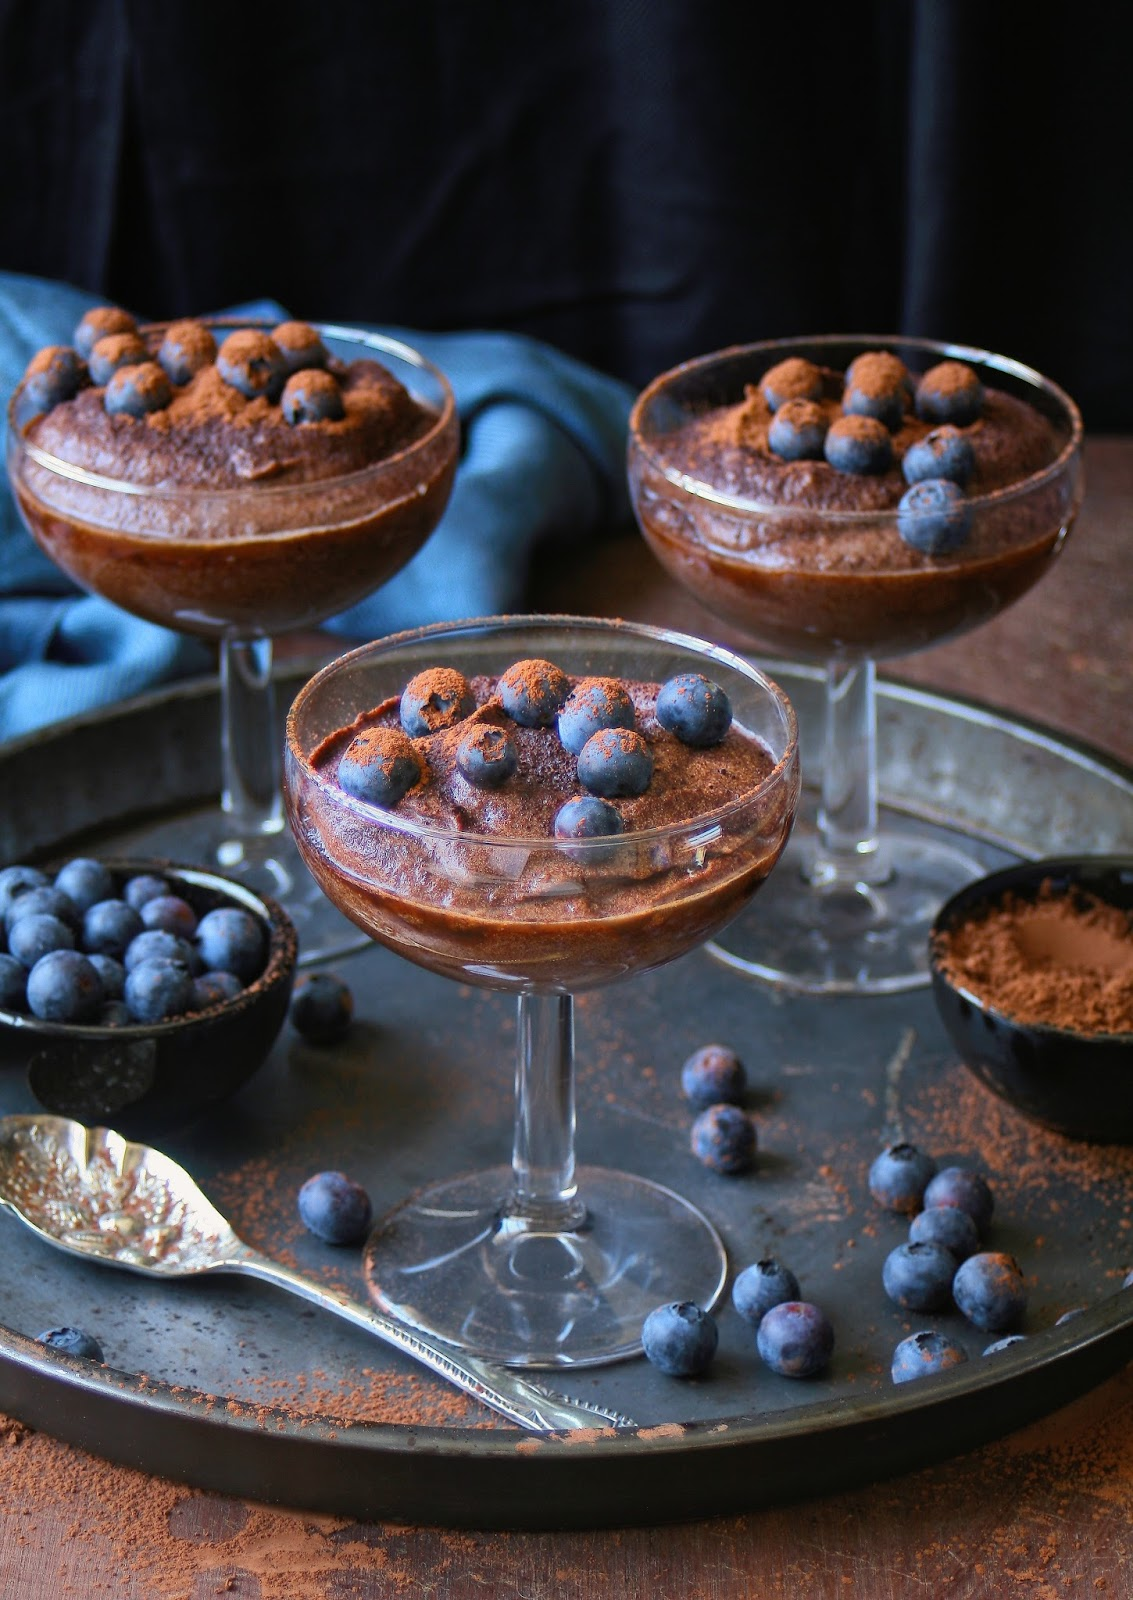 Sugar free gluten free chocolate mousse.